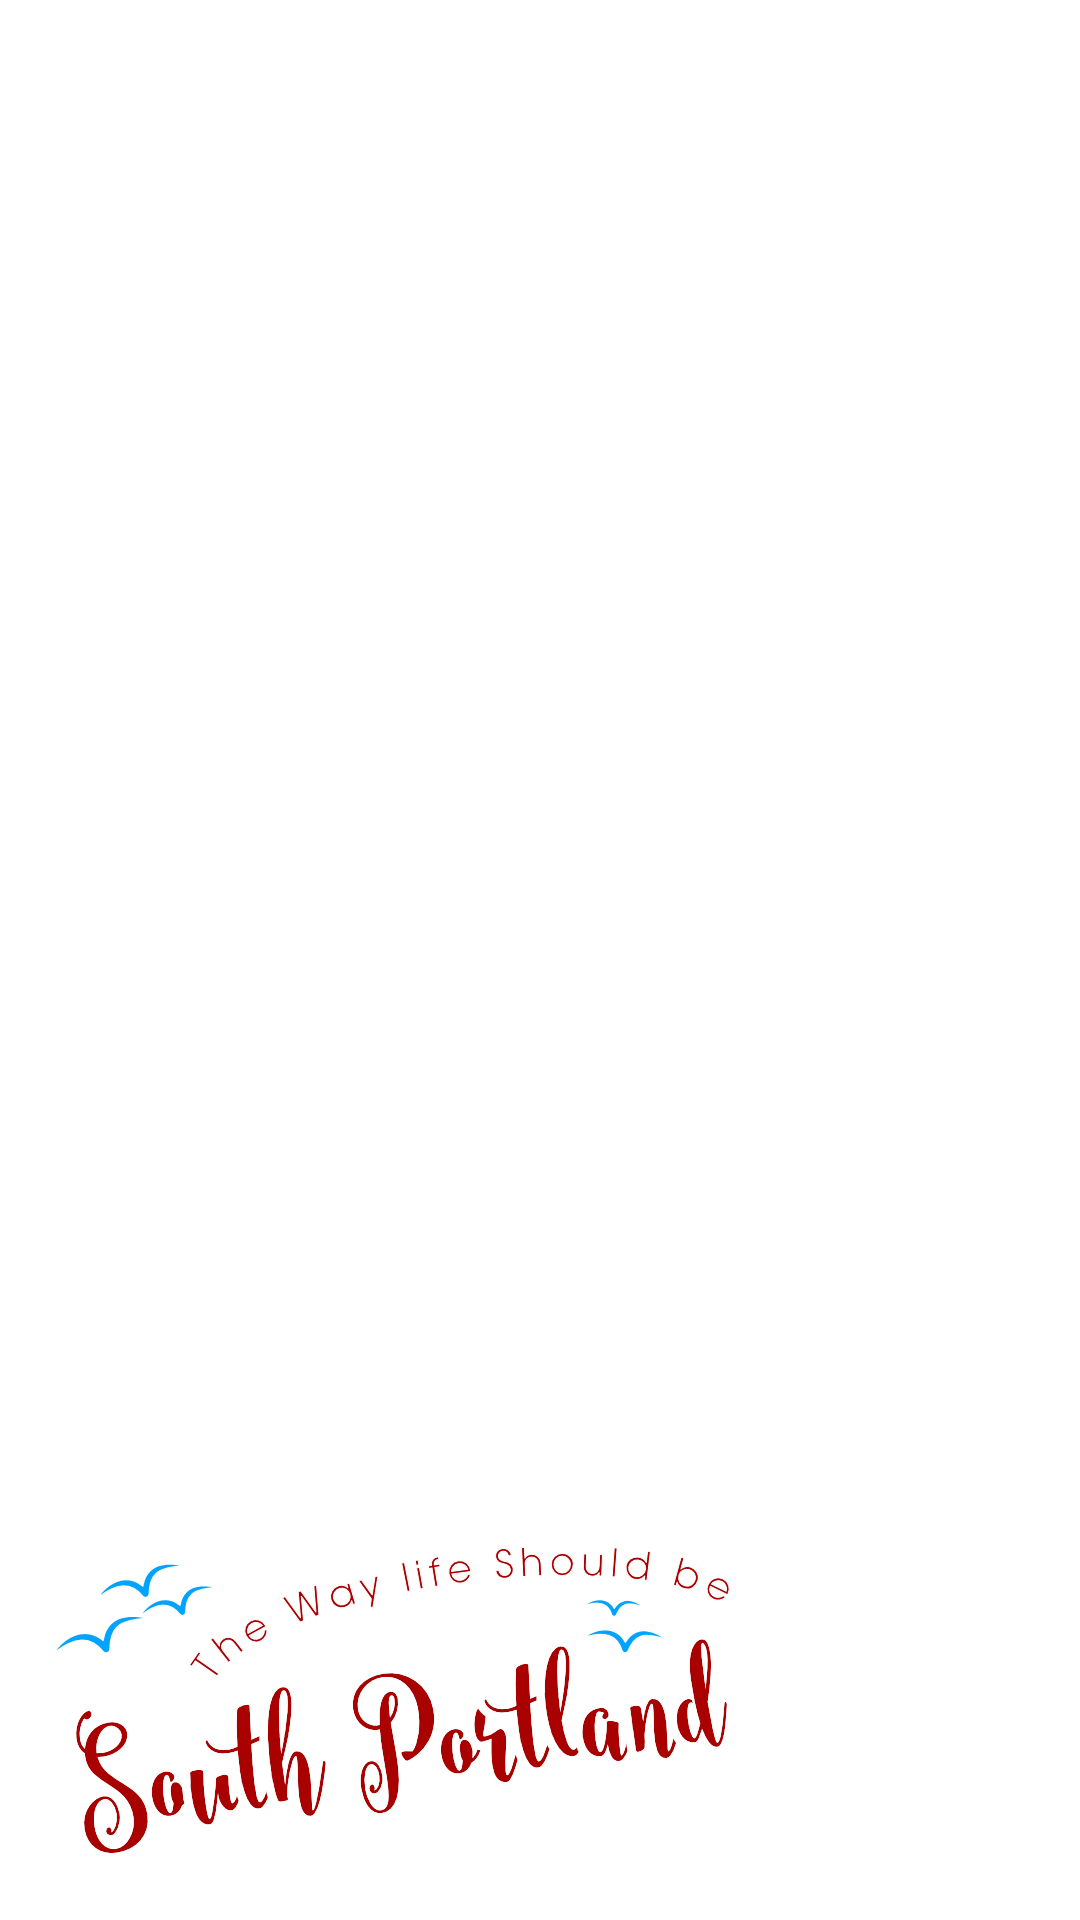 South Portland GeoFilter.png